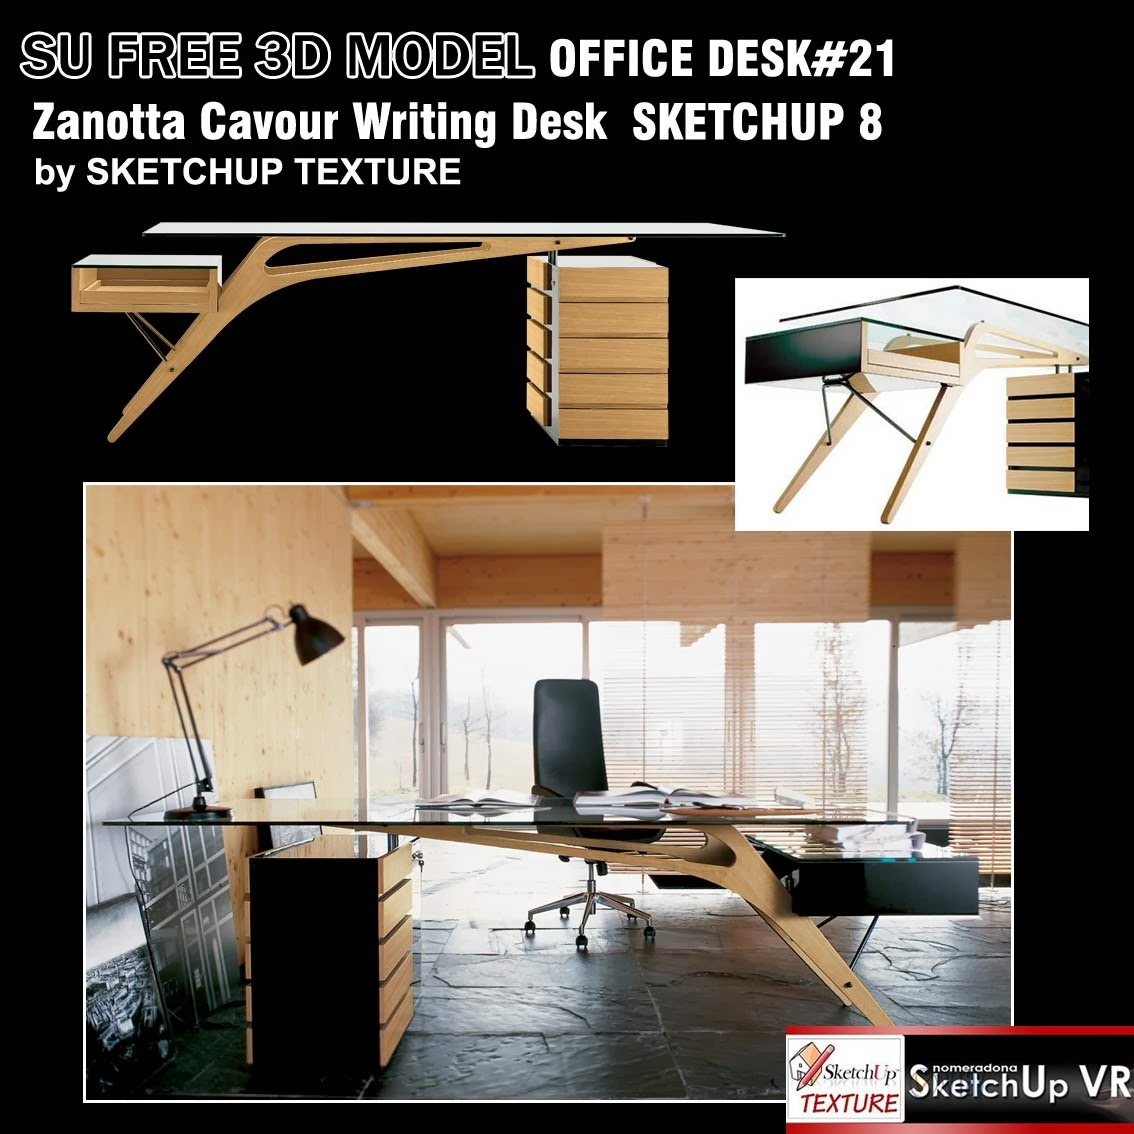 SKETCHUP TEXTURE SKETCHUP MODELS OFFICE FURNITURE